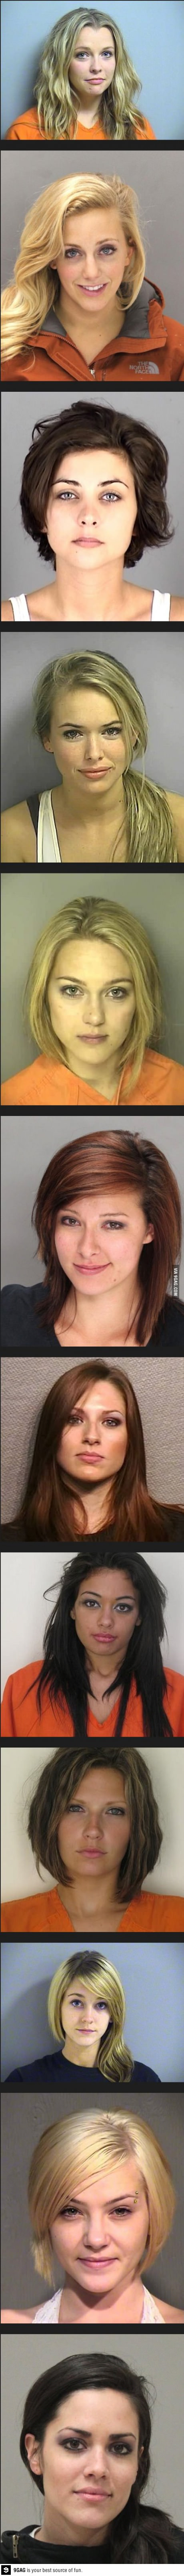 female, criminals, mug shot, hot